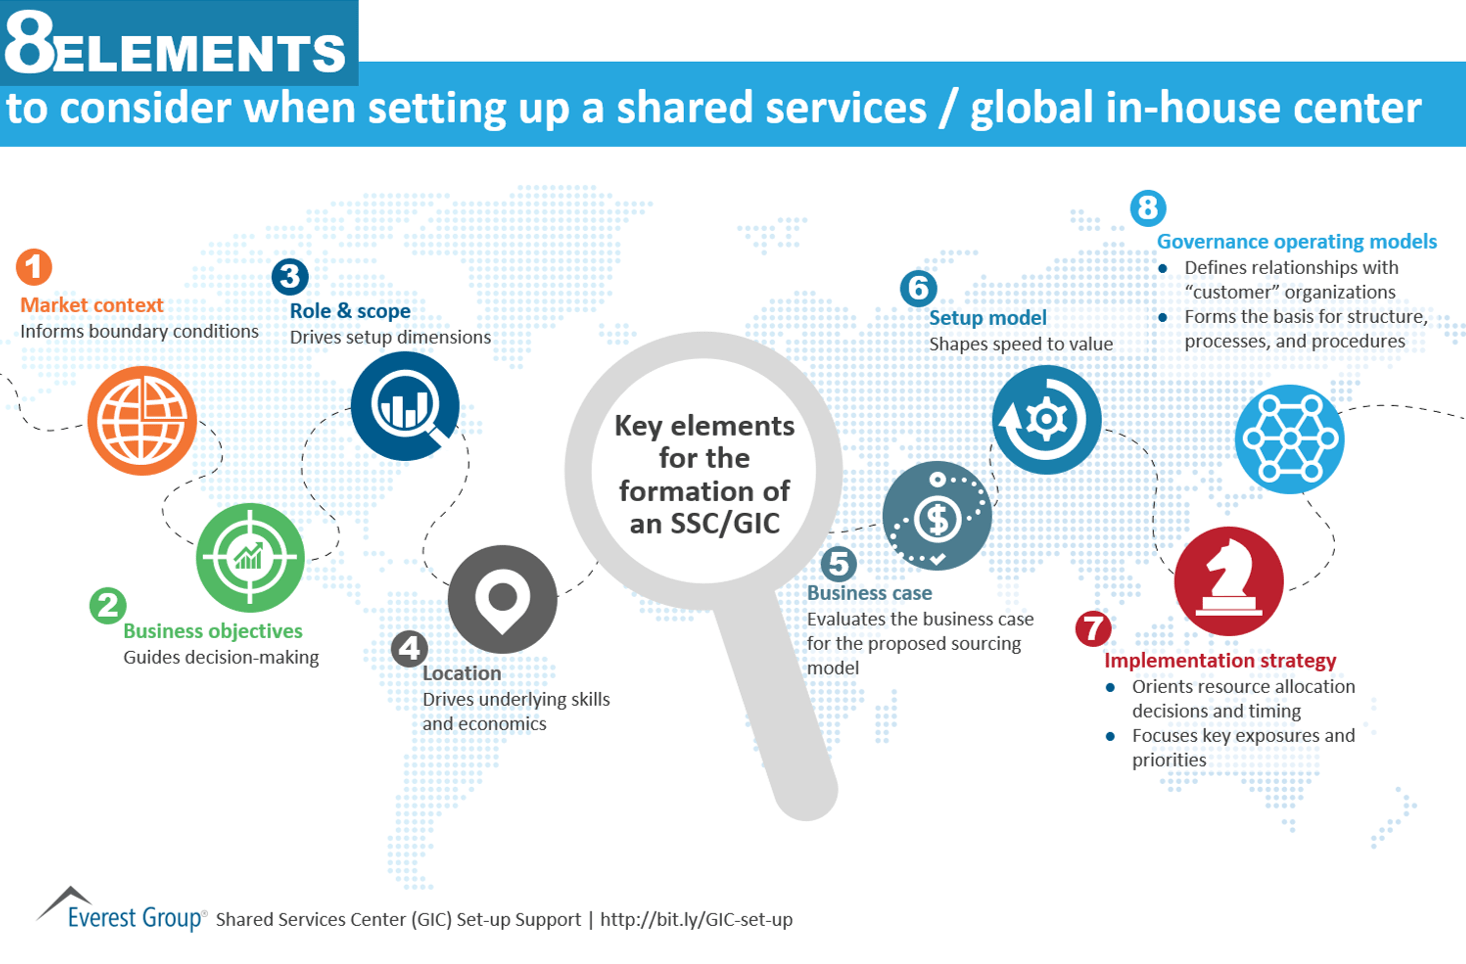 8 elements to consider setting up shared services